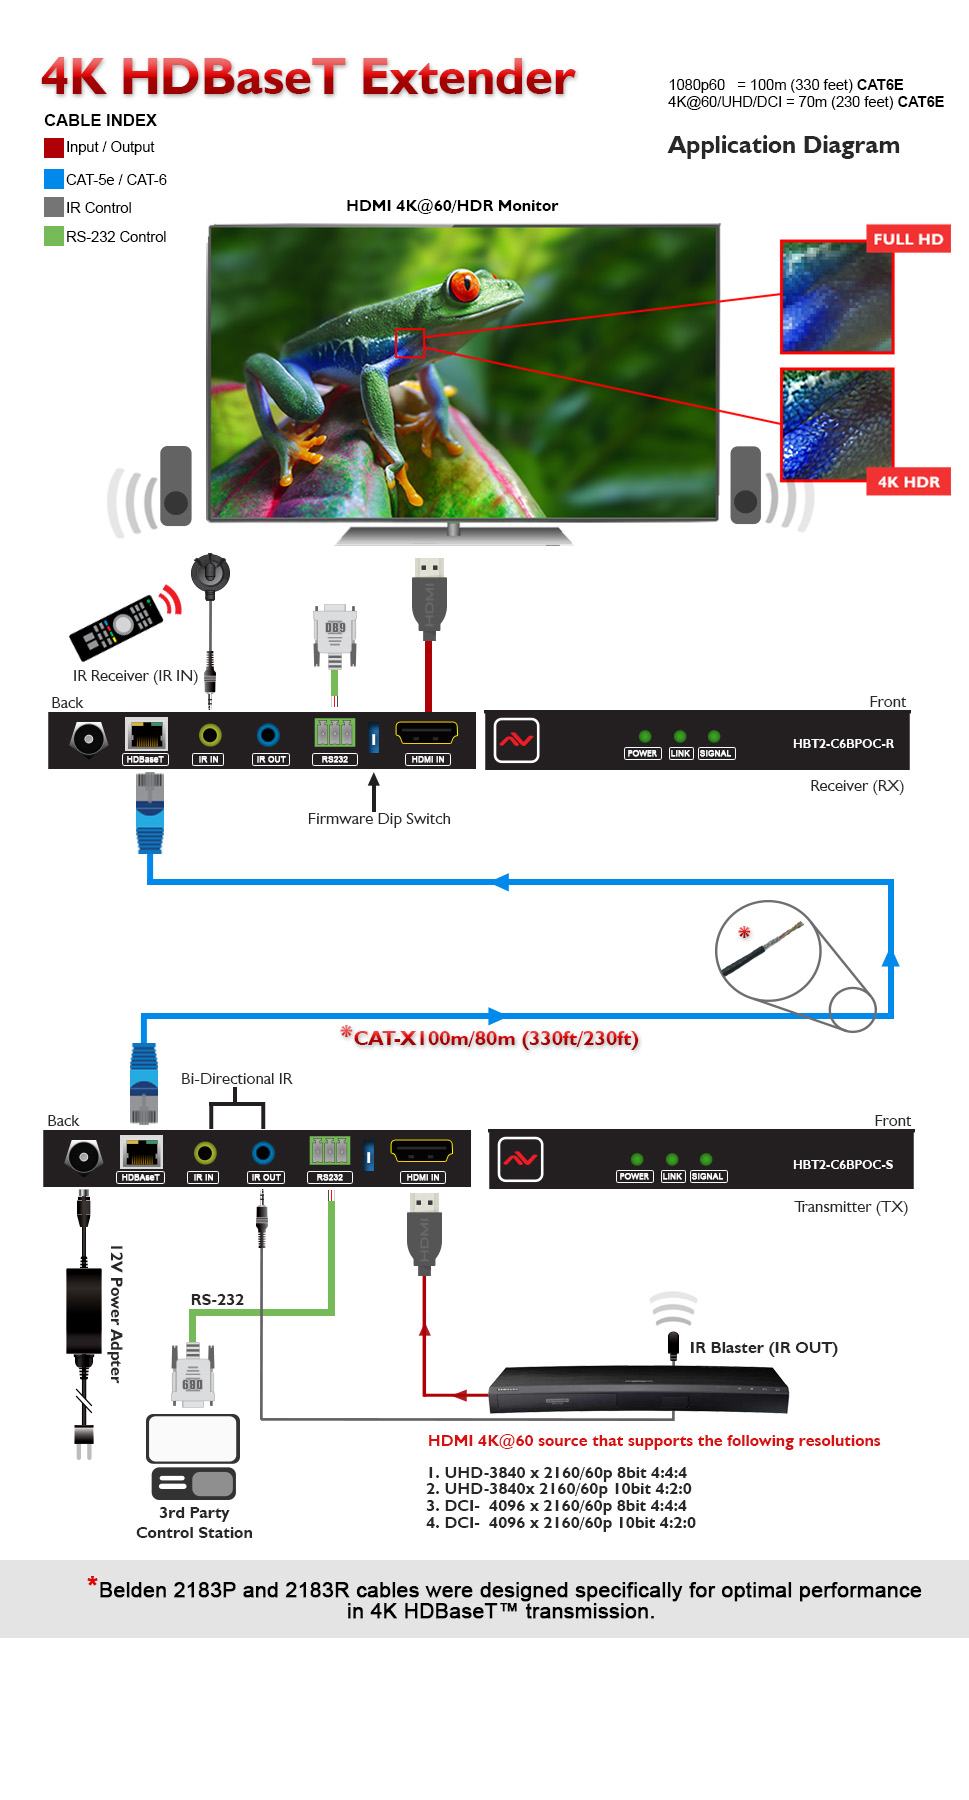 4k60 Hdmi Hdbaset Cat5 6 7 Extender Set With Bi Directional Ir Rs Cat6 Wiring Diagram Features